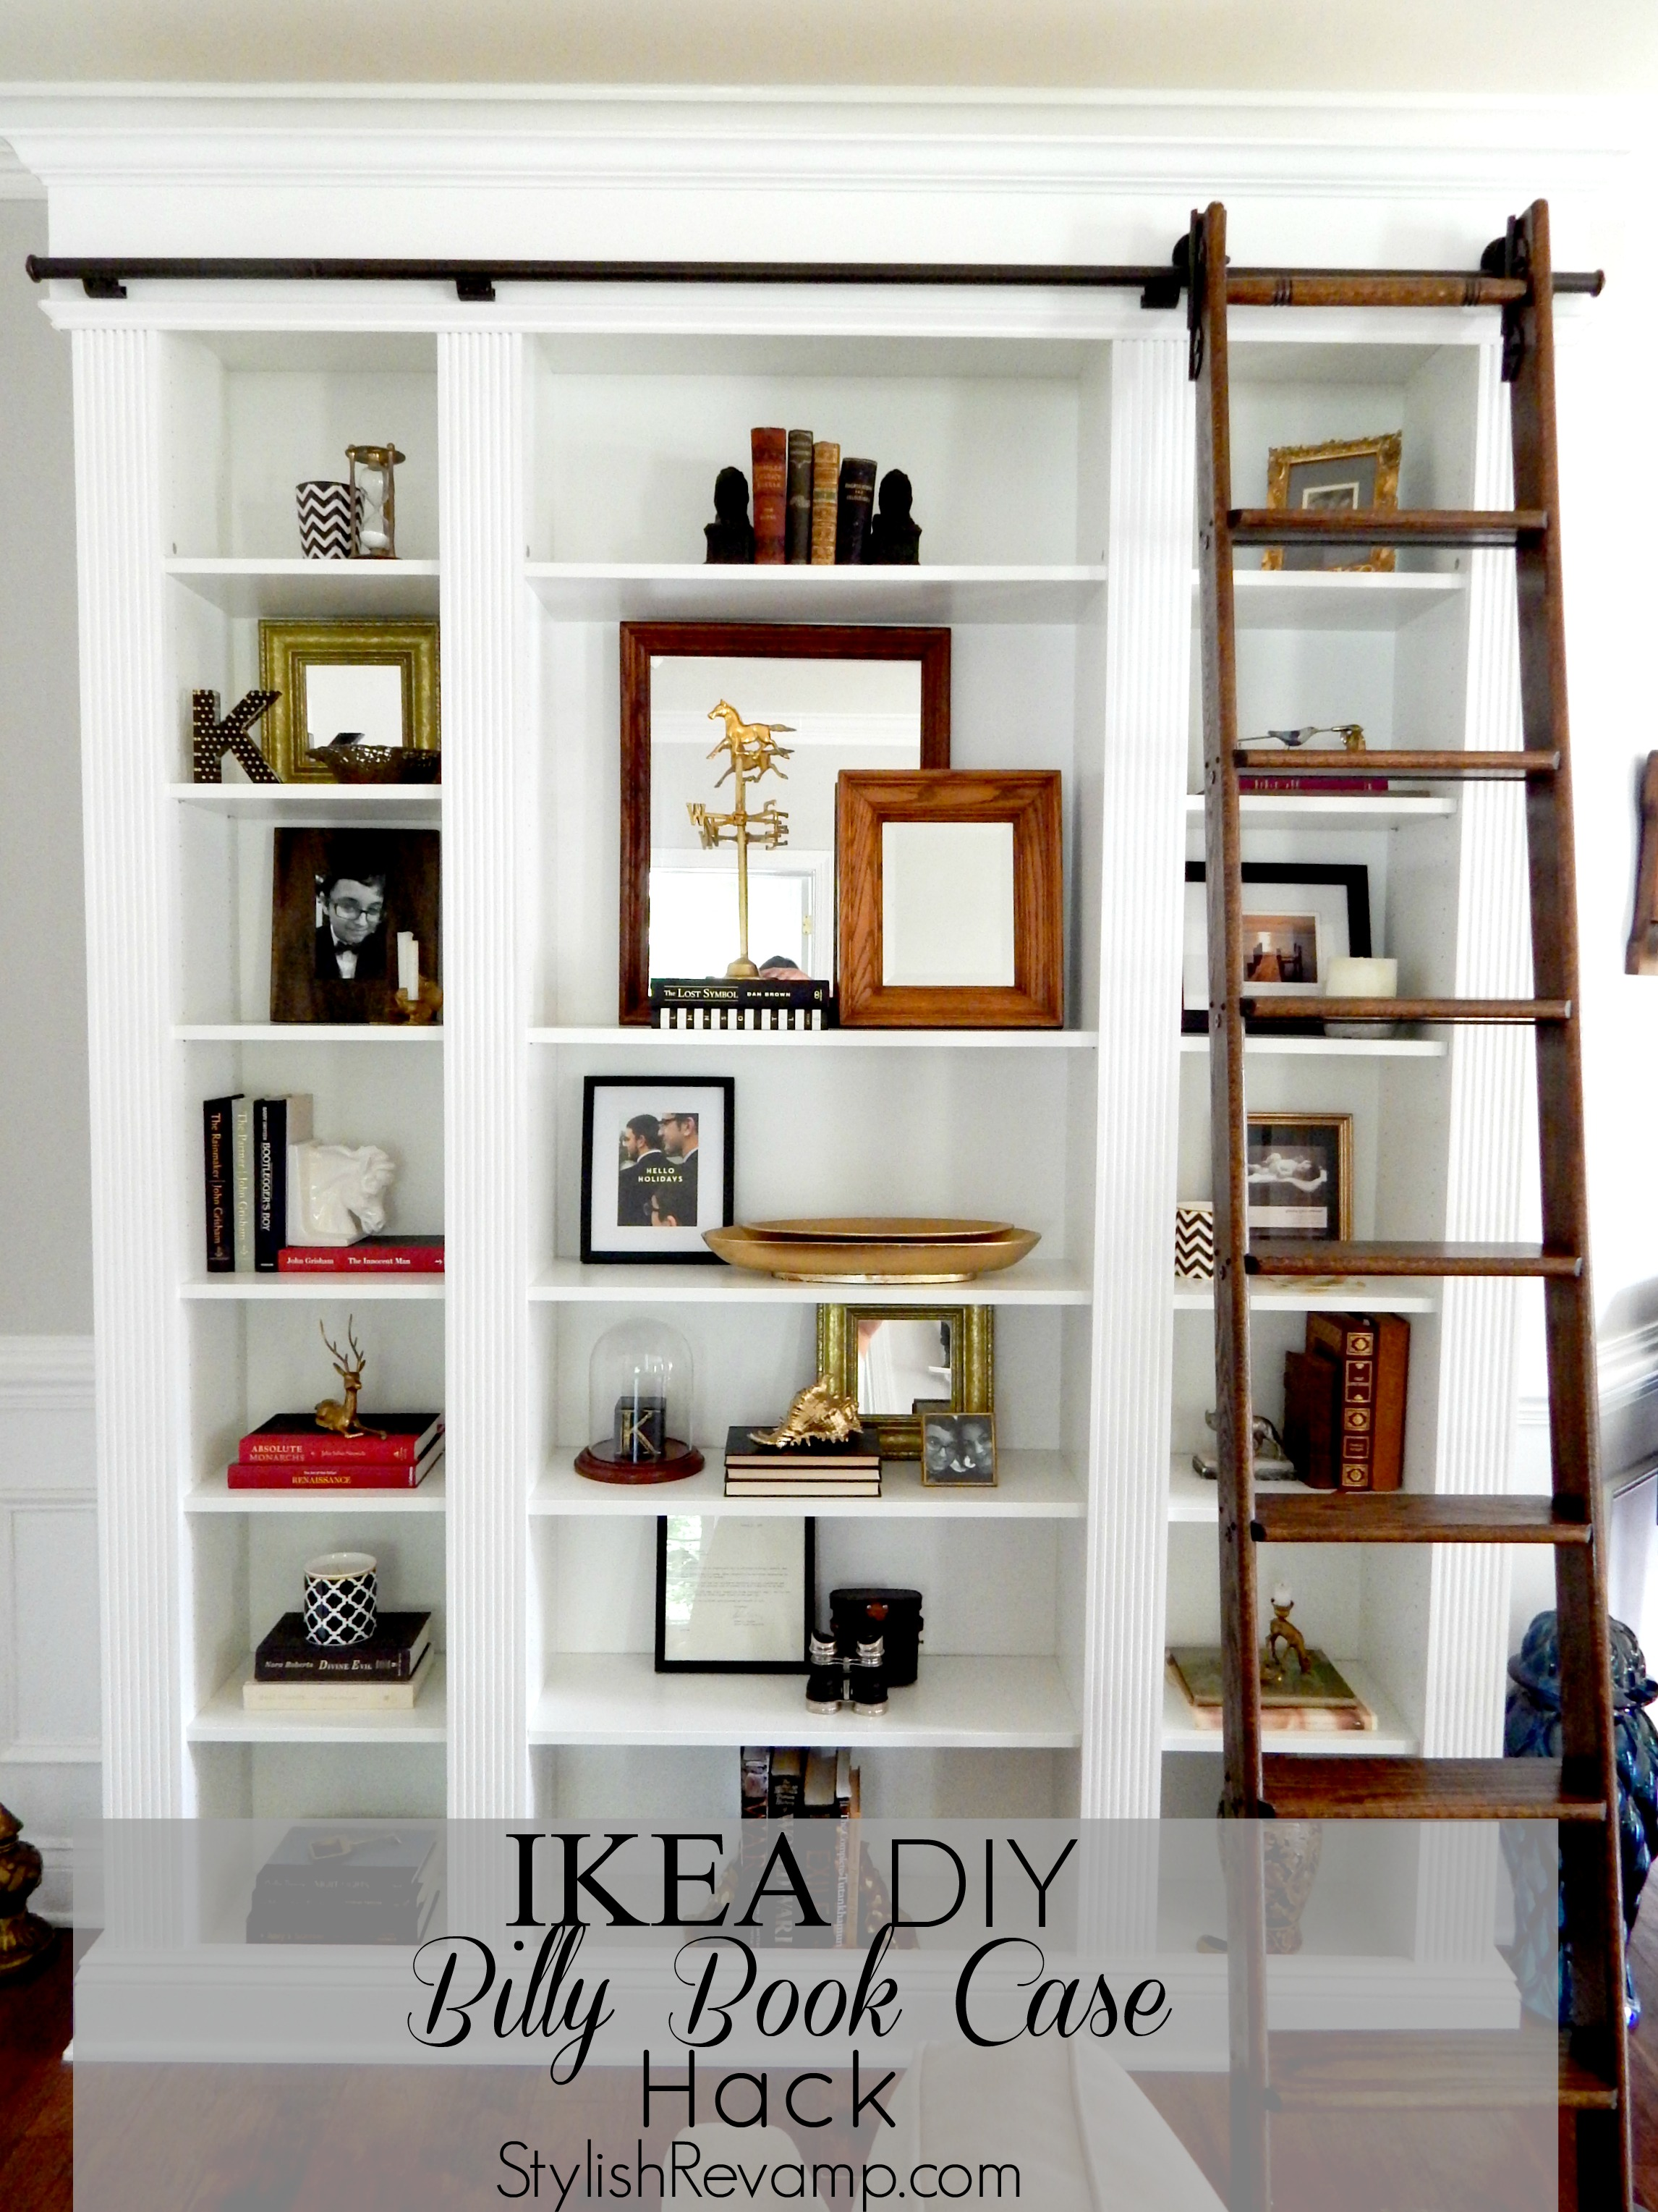 Decorating Master Bedroom Ideas Ikea Billy Bookcase Archives Stylish Revamp